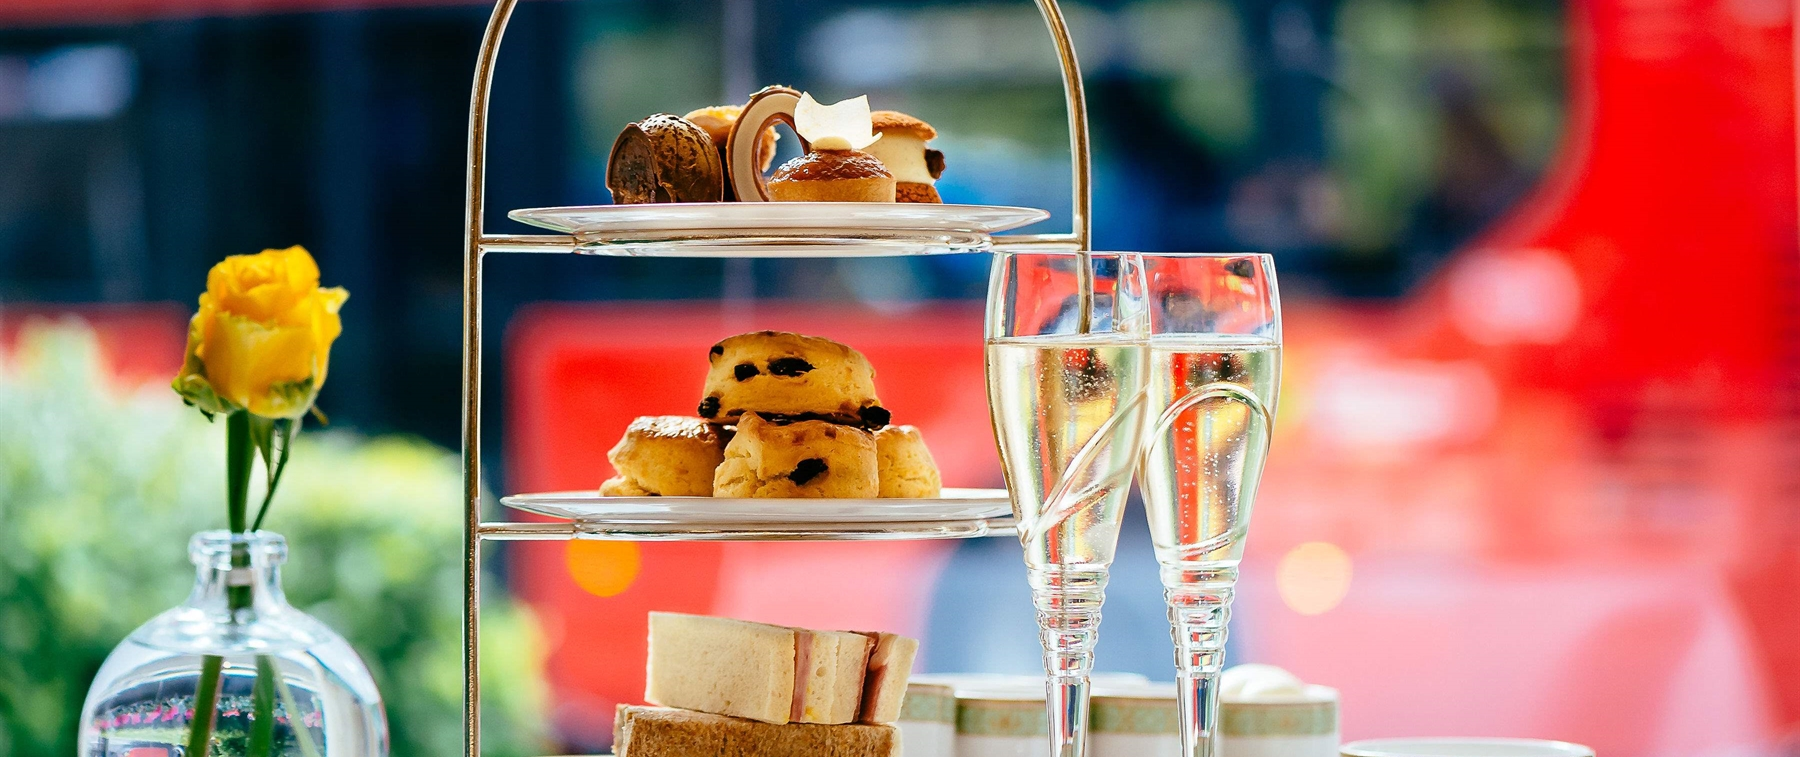 Afternoon Tea in The Park Room at JW Marriott Grosvenor House London